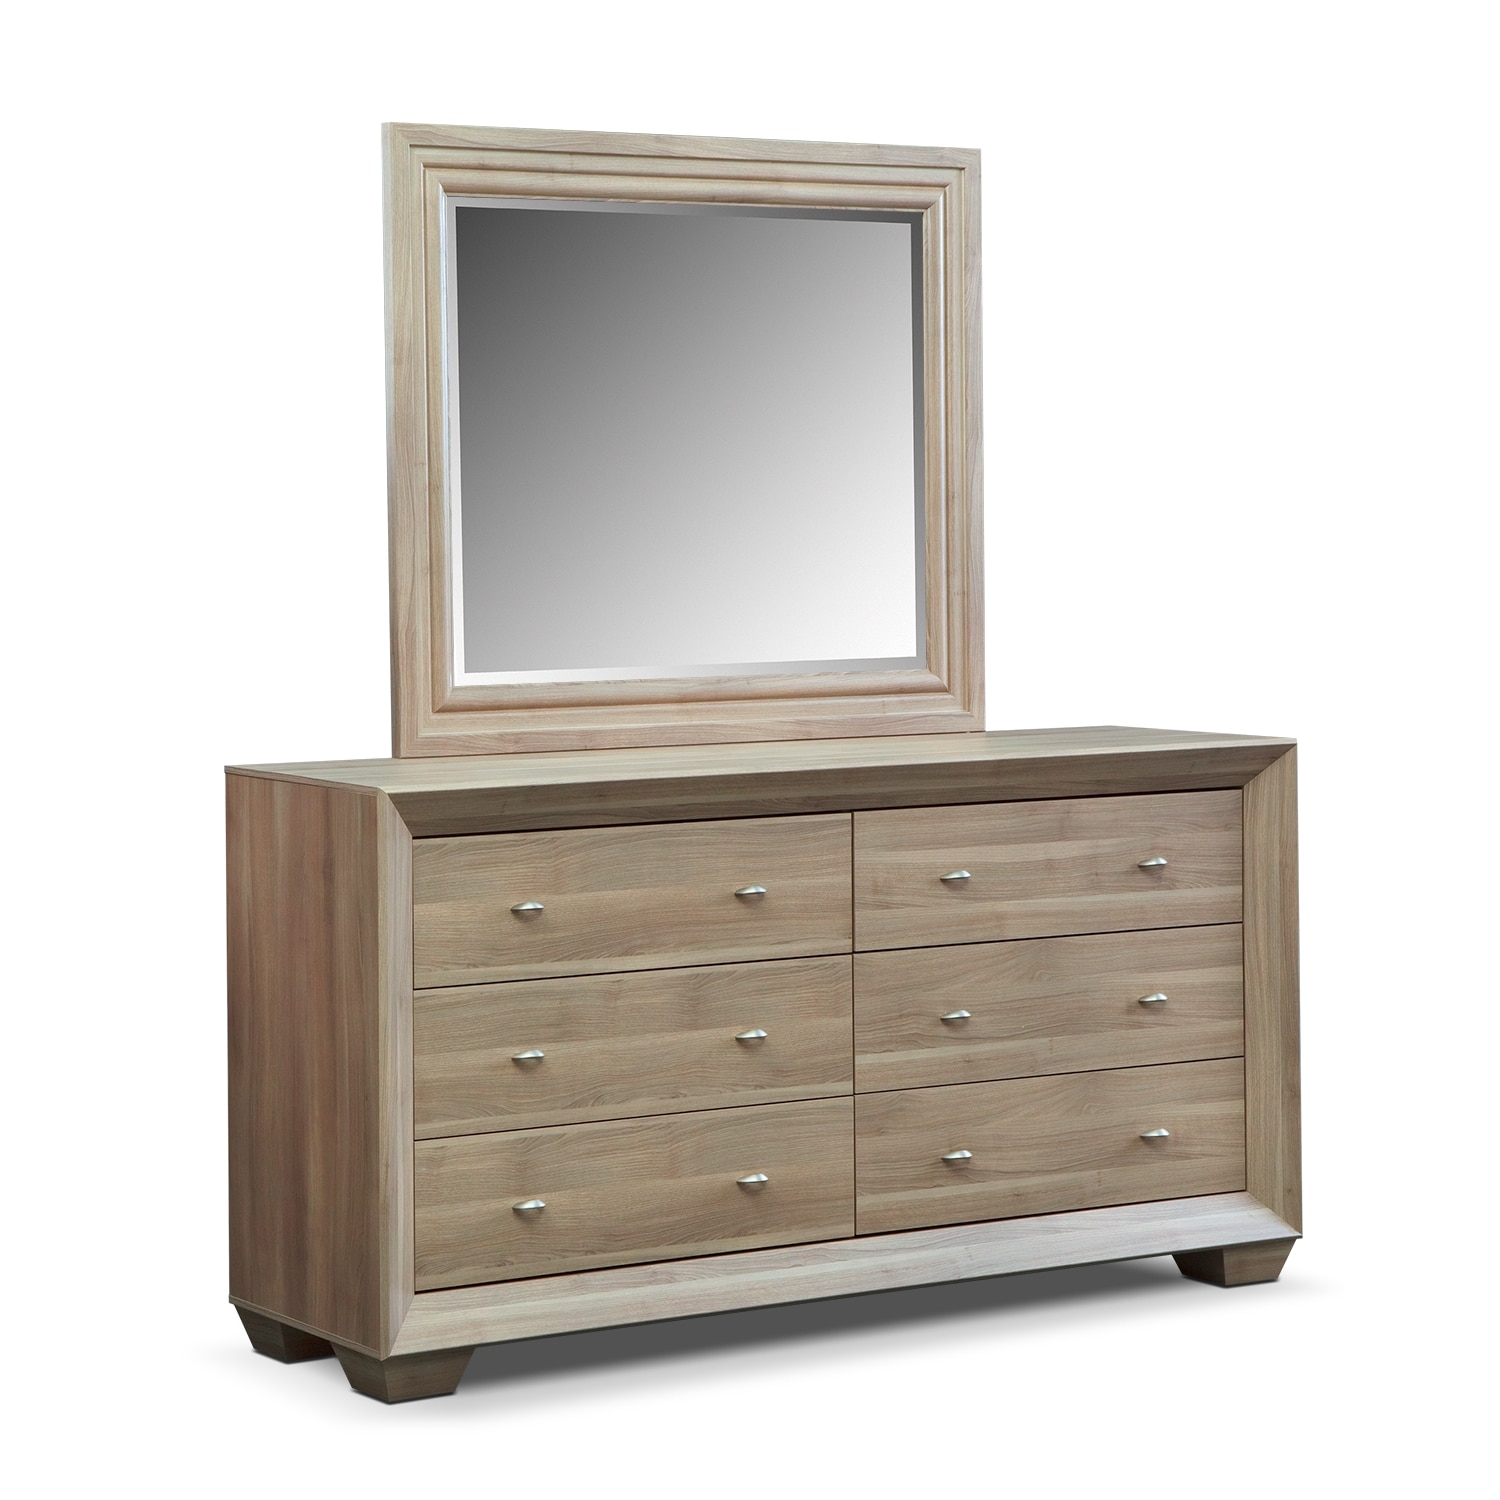 Value City Furniture Bedroom Set